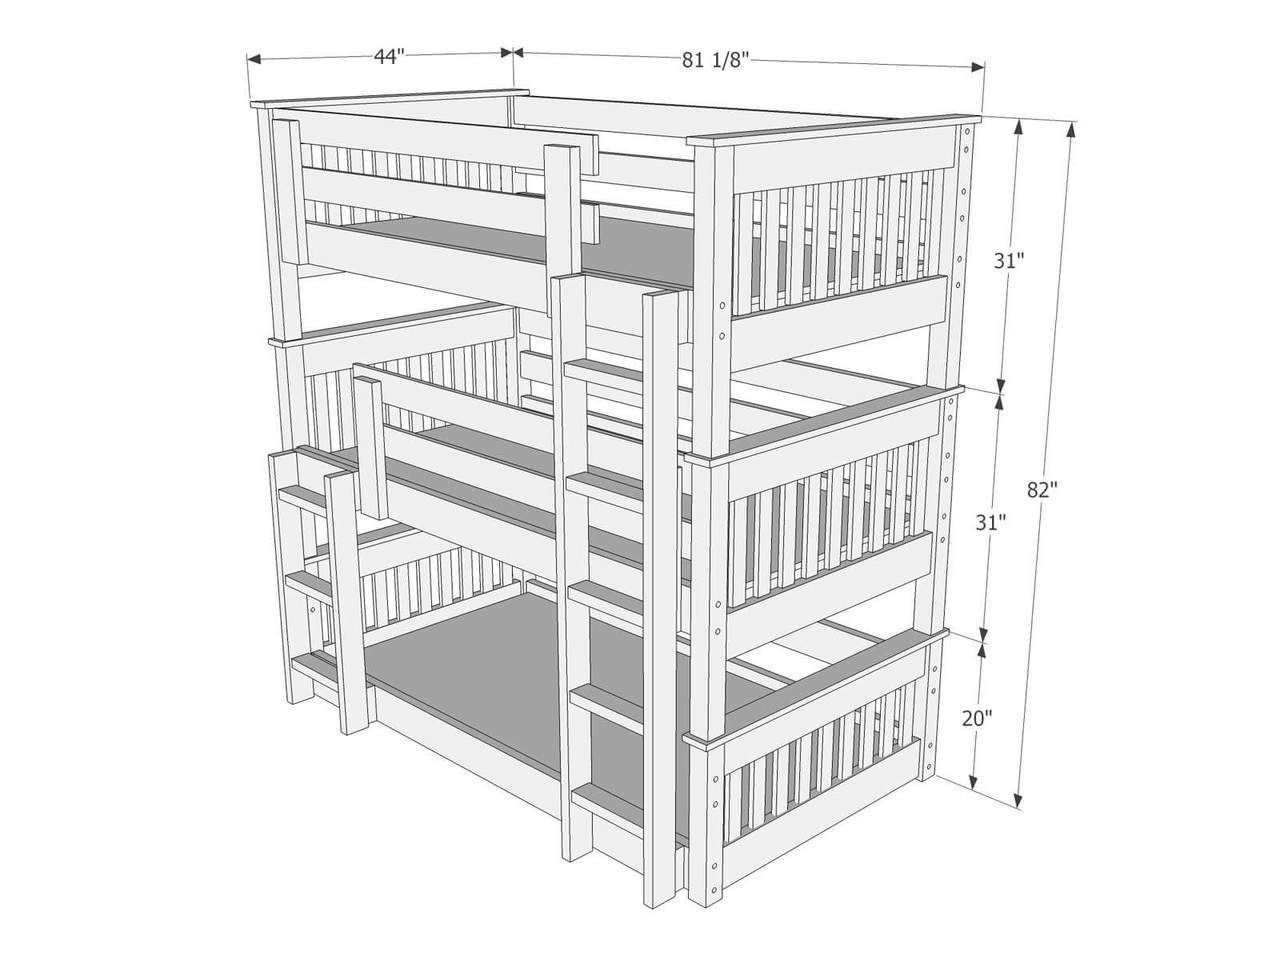 Dimensions of Triple Bunk Bed B63 | Bunk Bed in 2019 | Pinterest